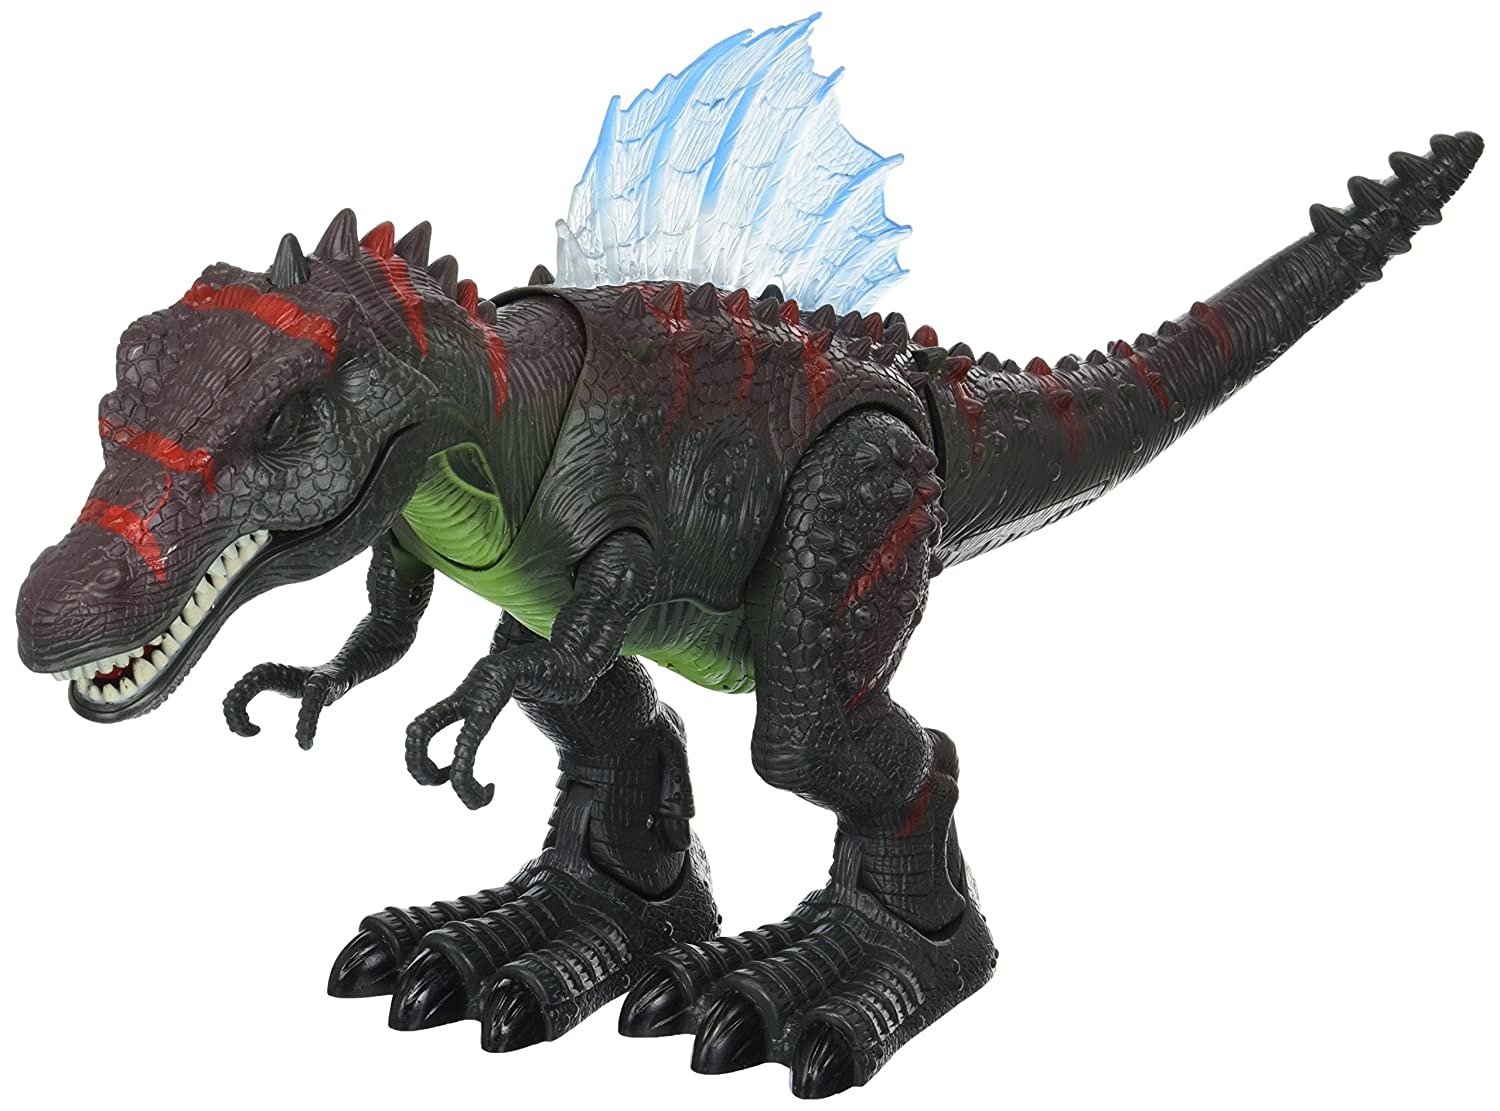 Lights and Sounds Dinosaur Century Spinosaurus Battery Operated Toy Dinosaur Figure w// Realistic Movement Colors May Vary Velocity Toys 6661